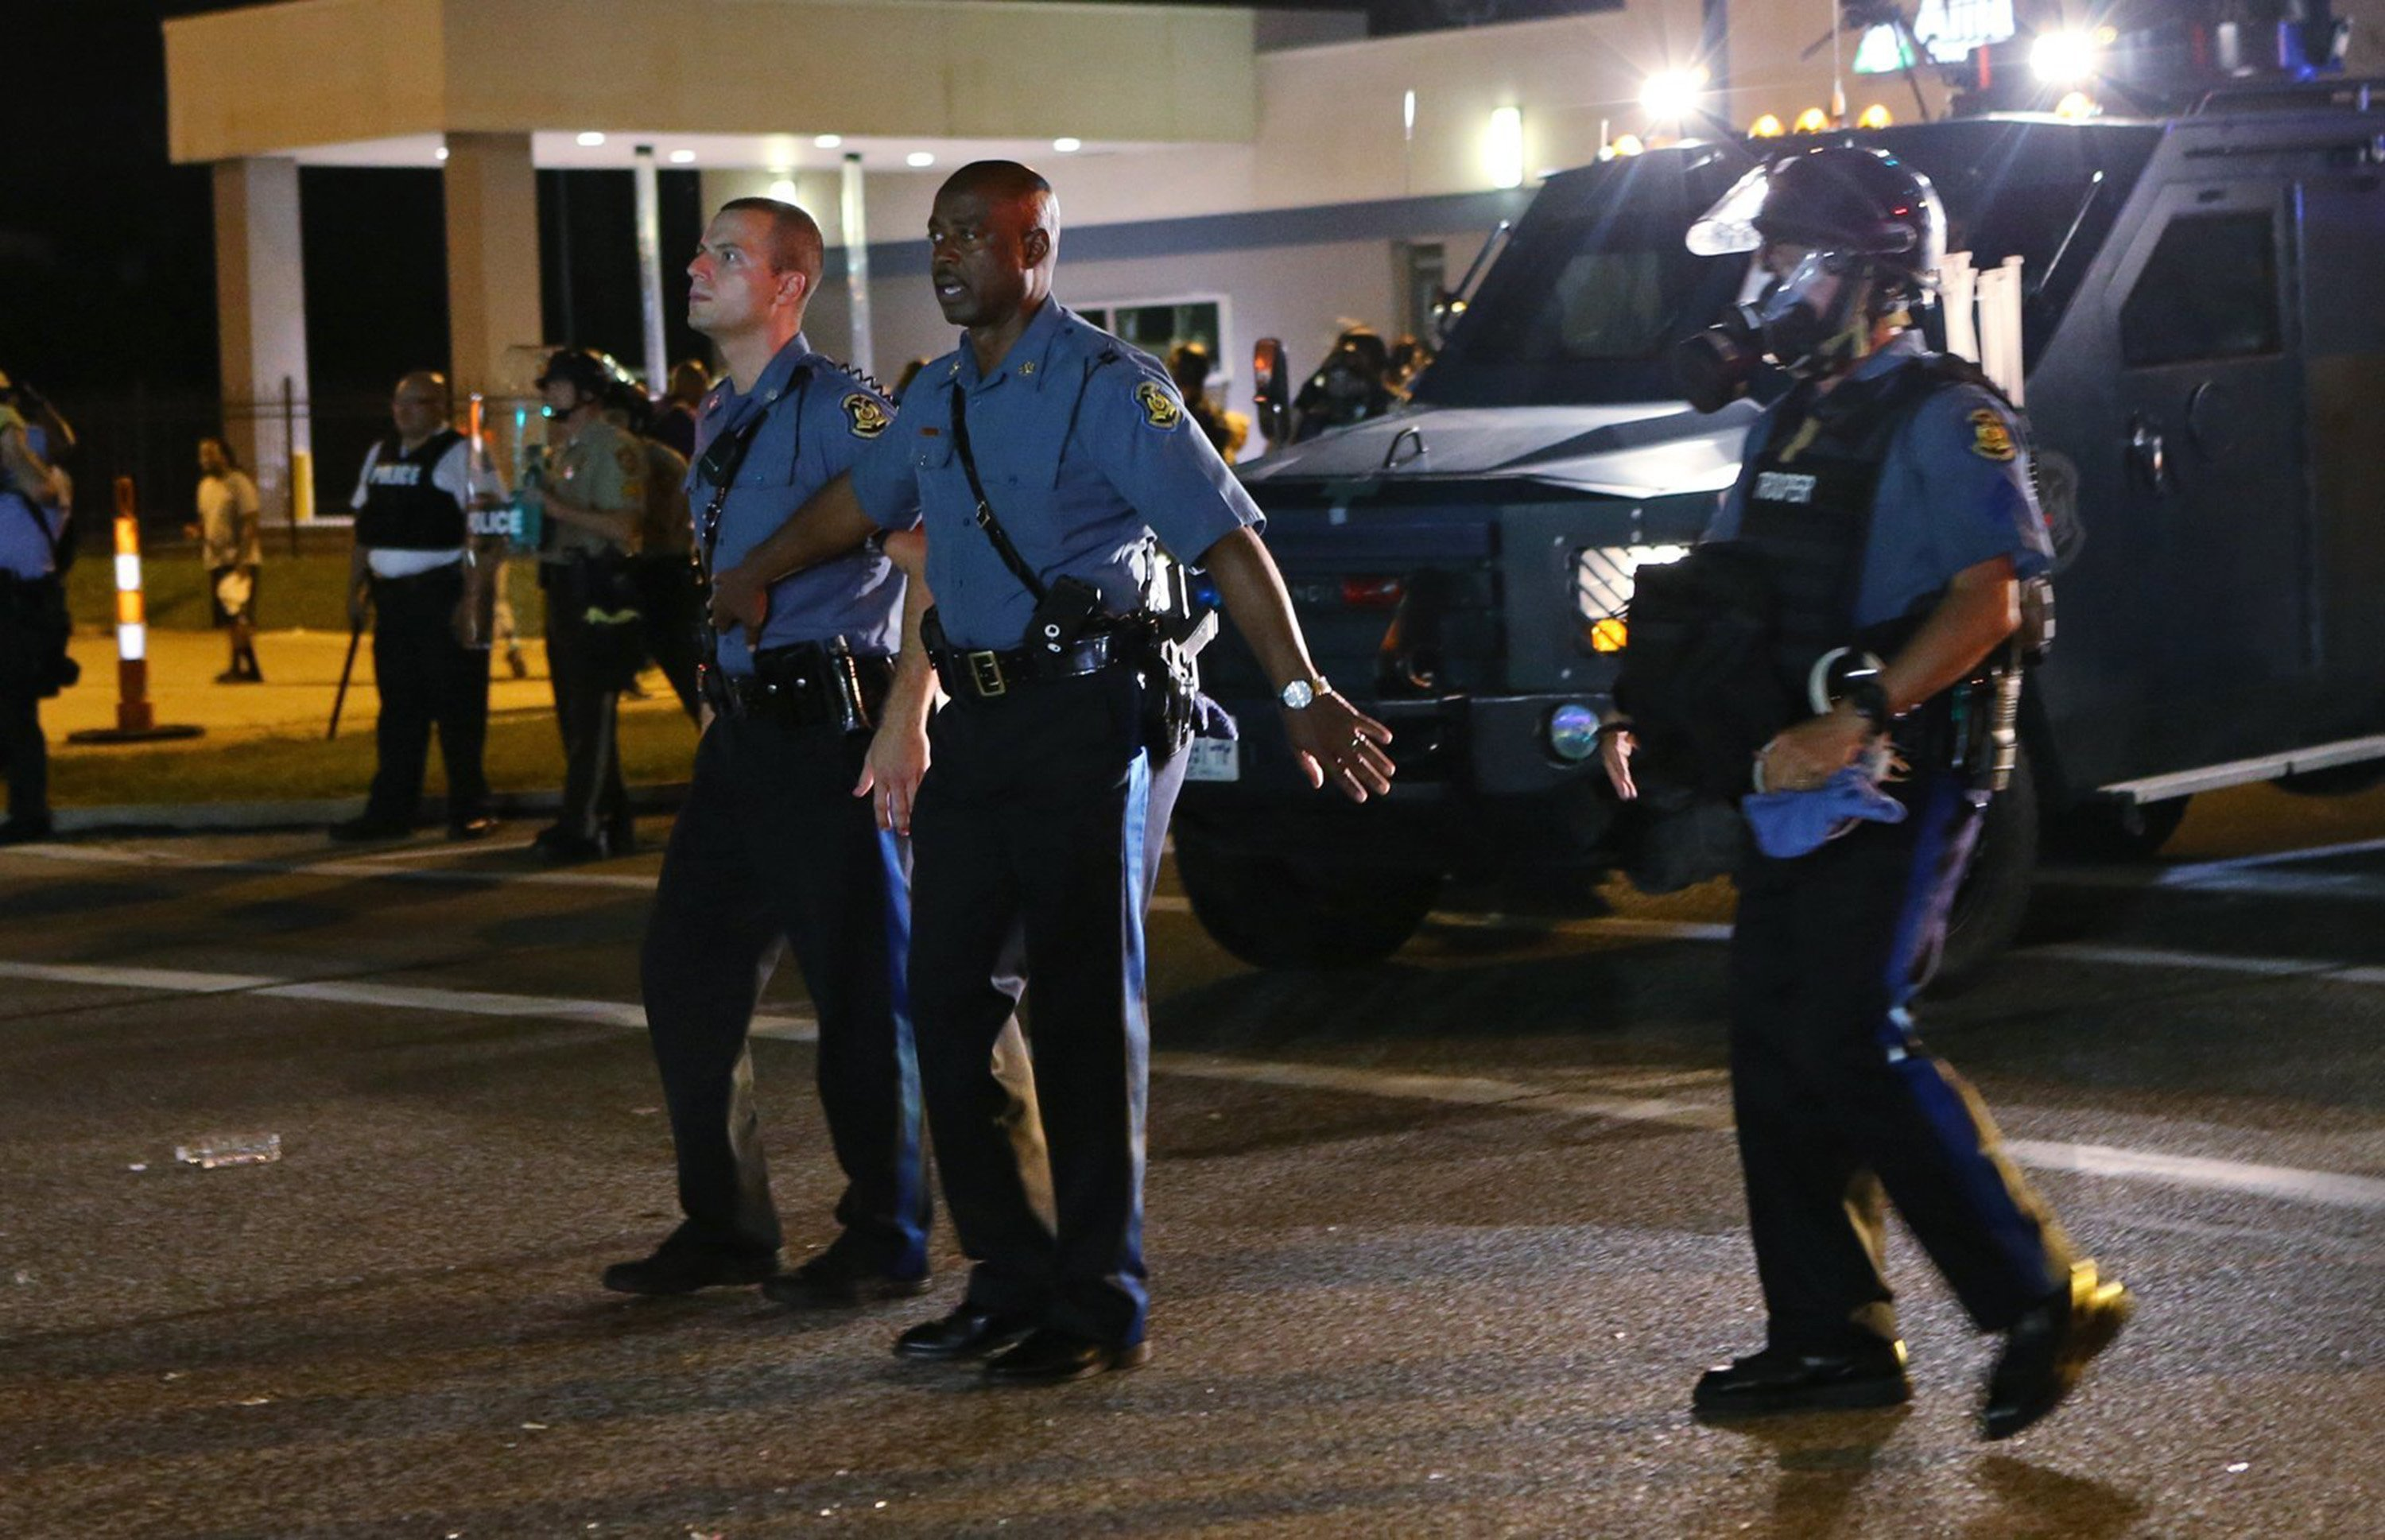 Capt. Ron Johnson pulled his men away from aggresive protesters in Ferguson on Monday night.